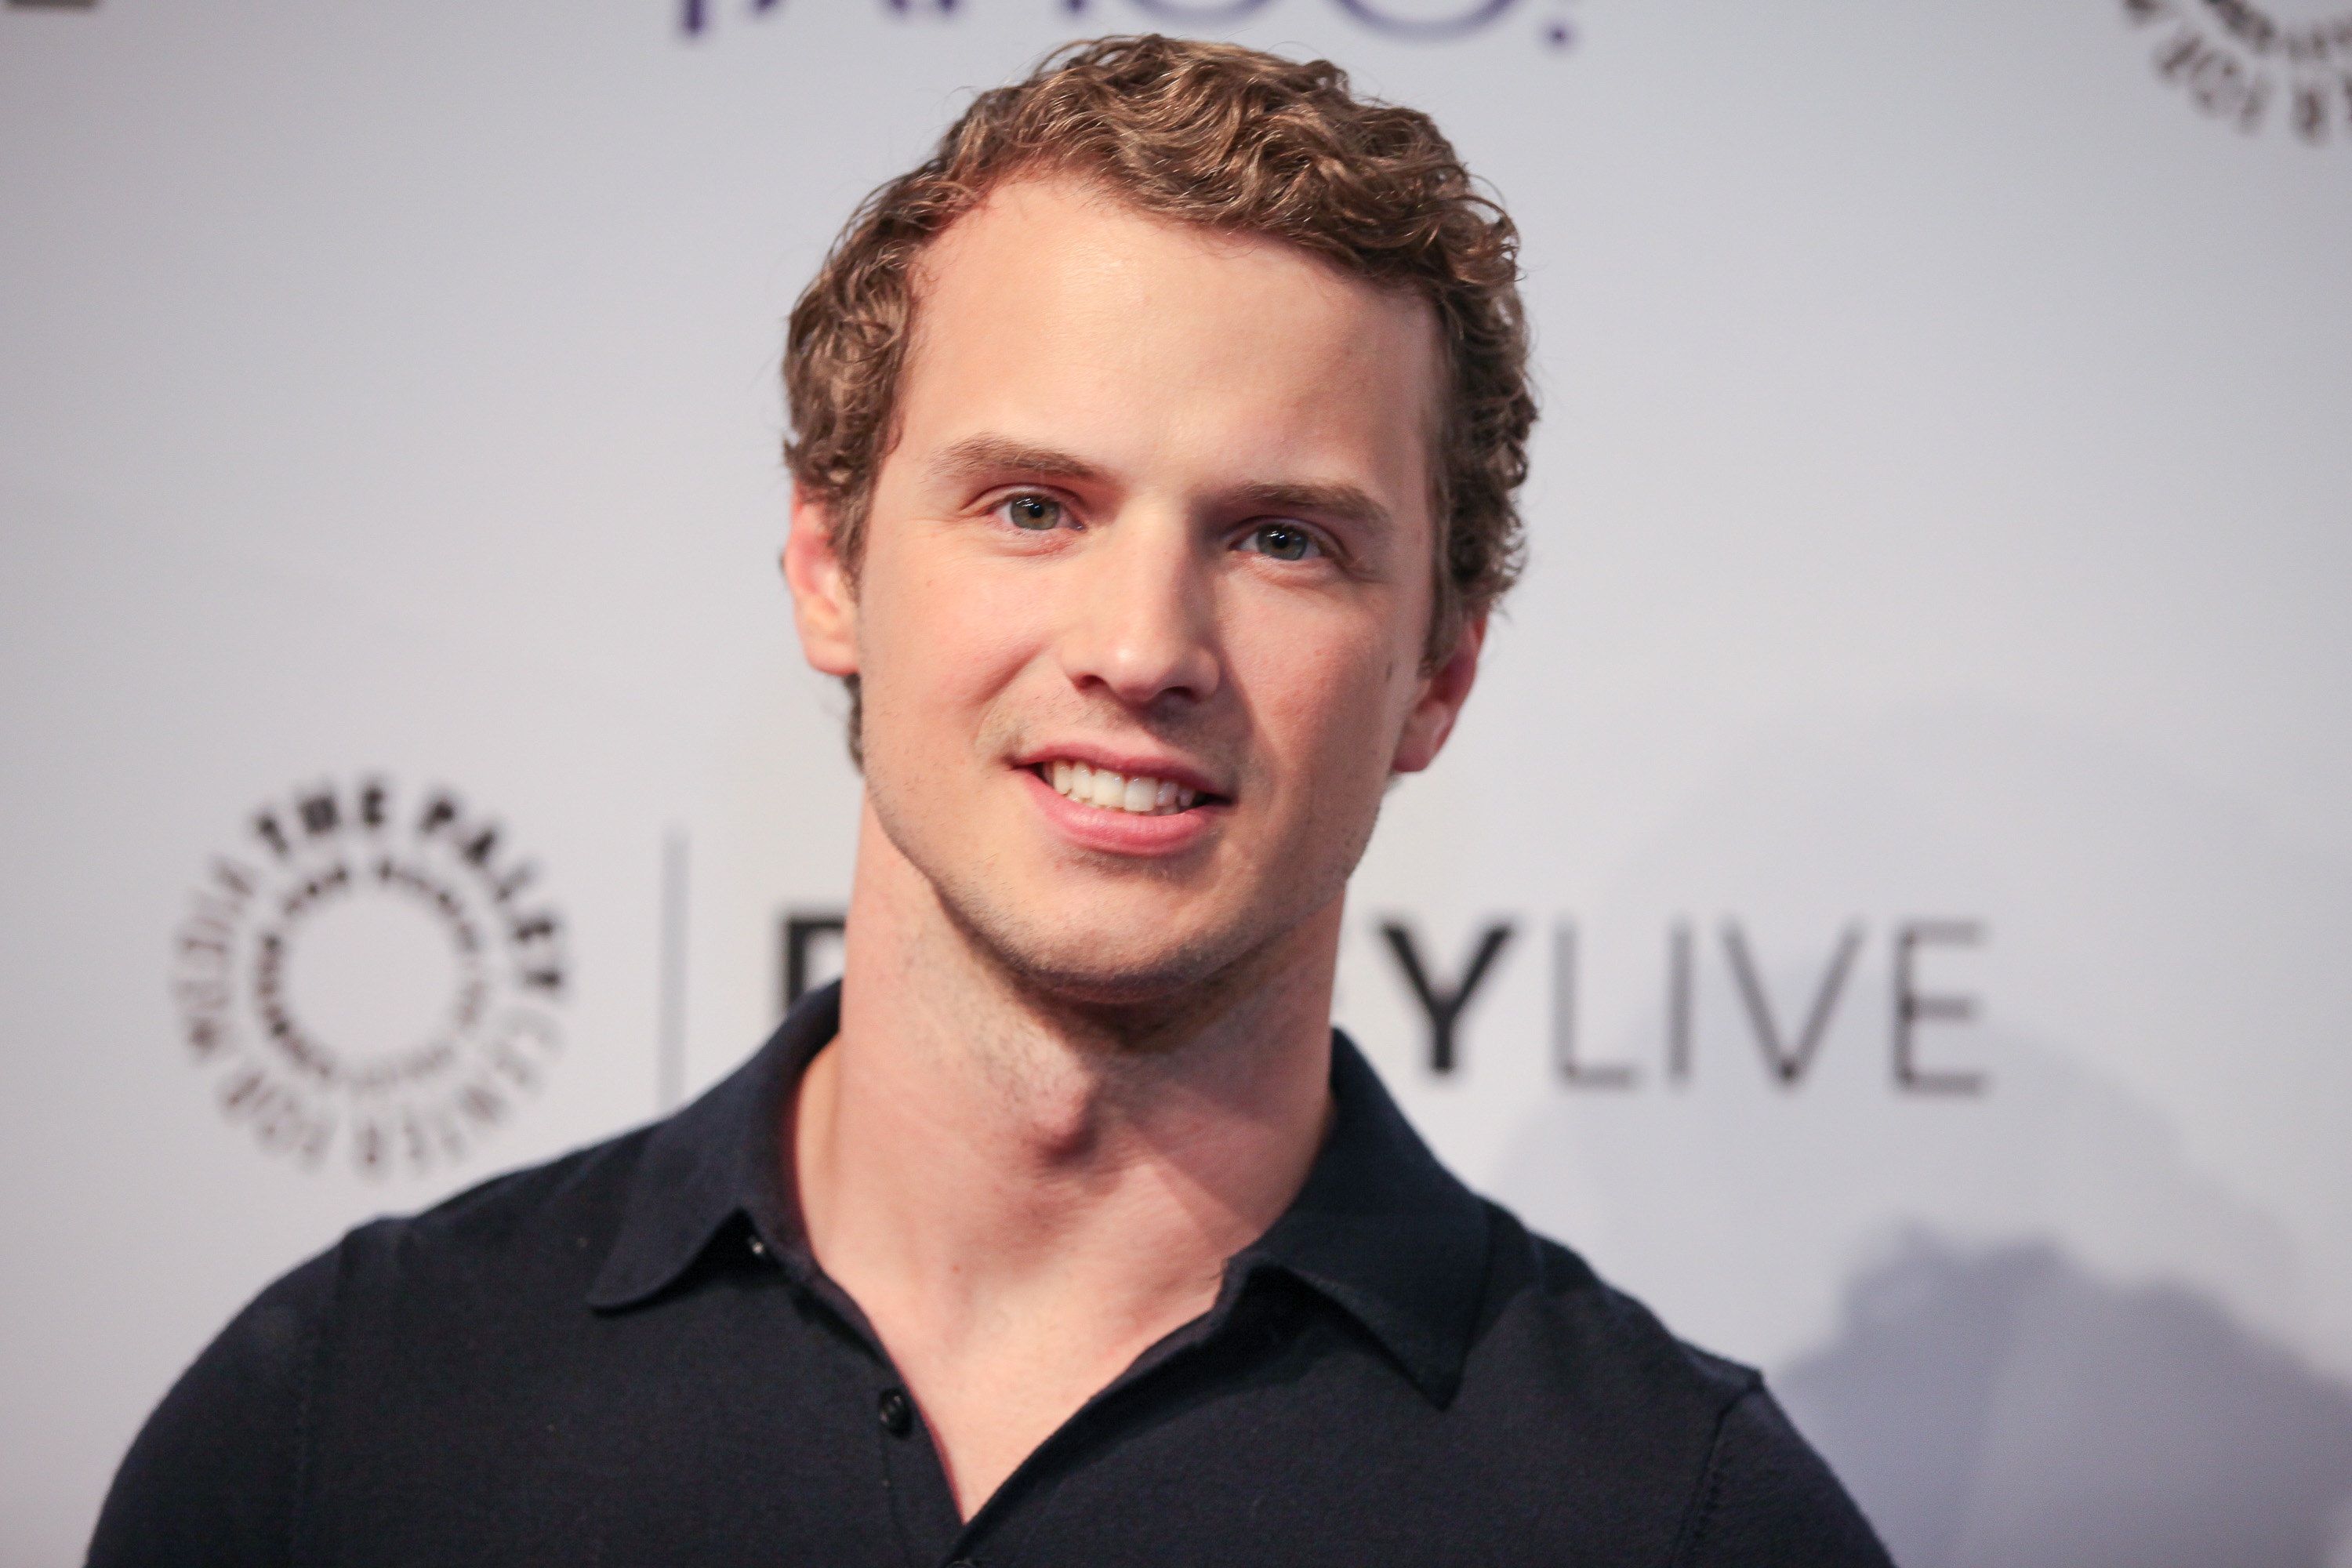 Deadline is exclusively reporting that Freddie Stroma has joined the cast of The Suicide Squad spinoff series Peacemaker at HBO Max, replacing Chris Conrad who has departed the project amicably due to creative differences.